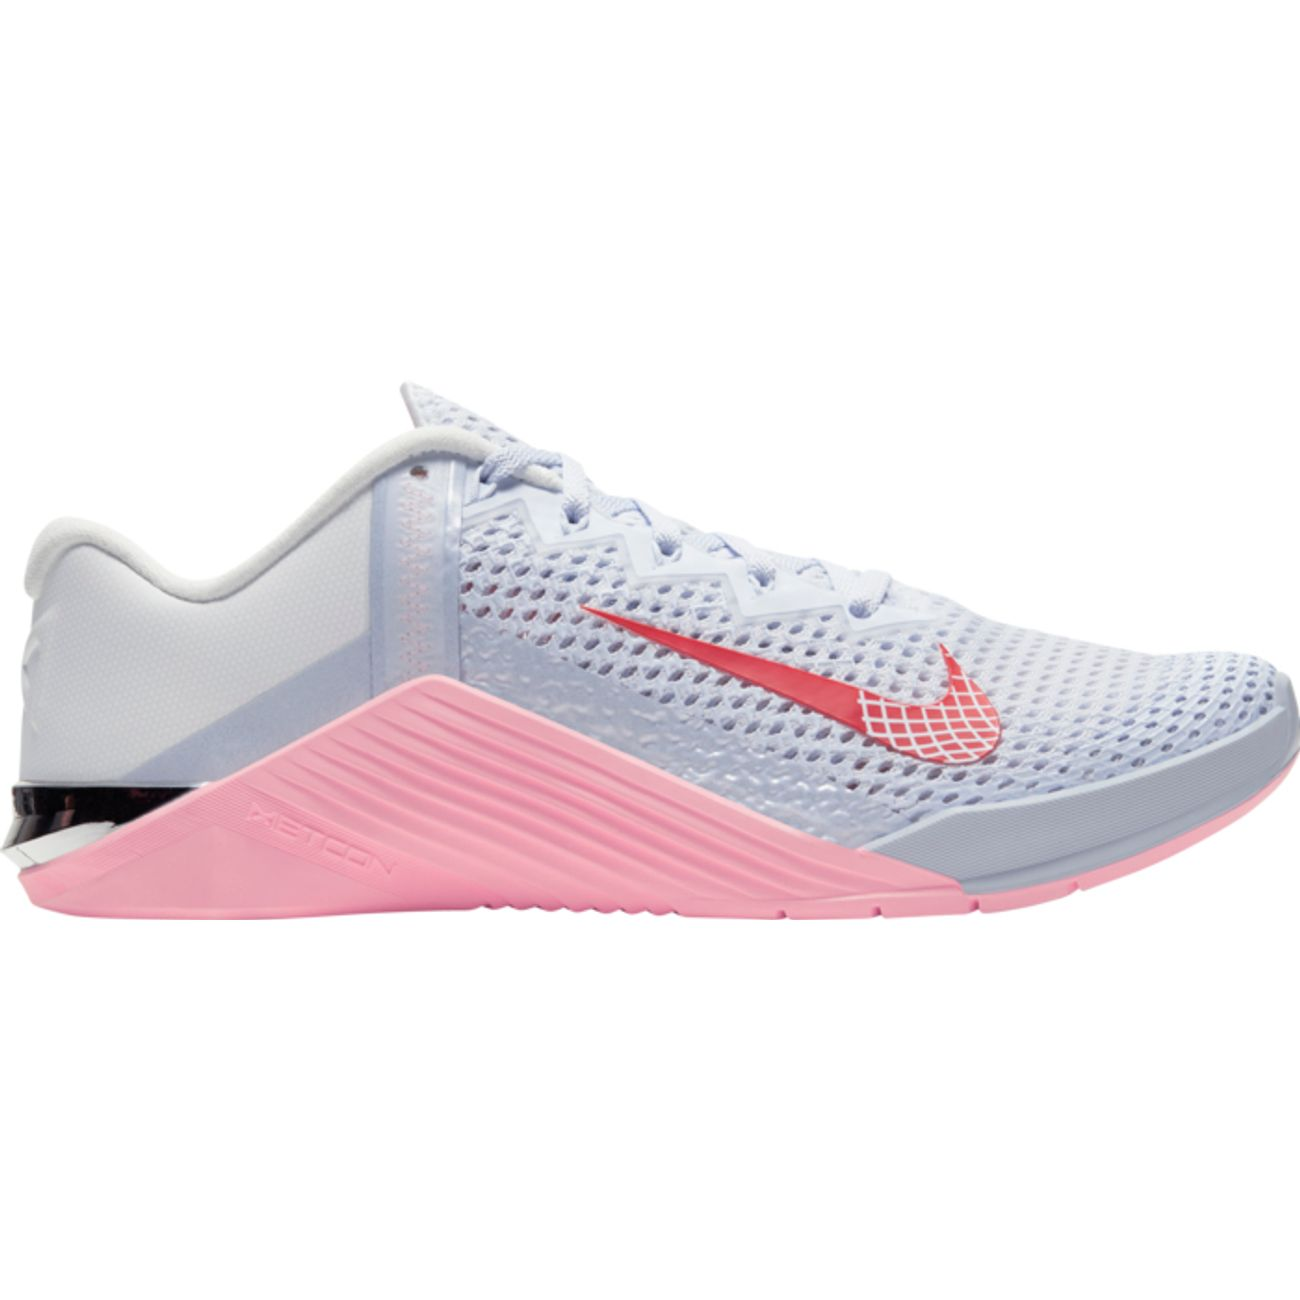 CHAUSSURES BASSES Musculation femme NIKE METCON 6